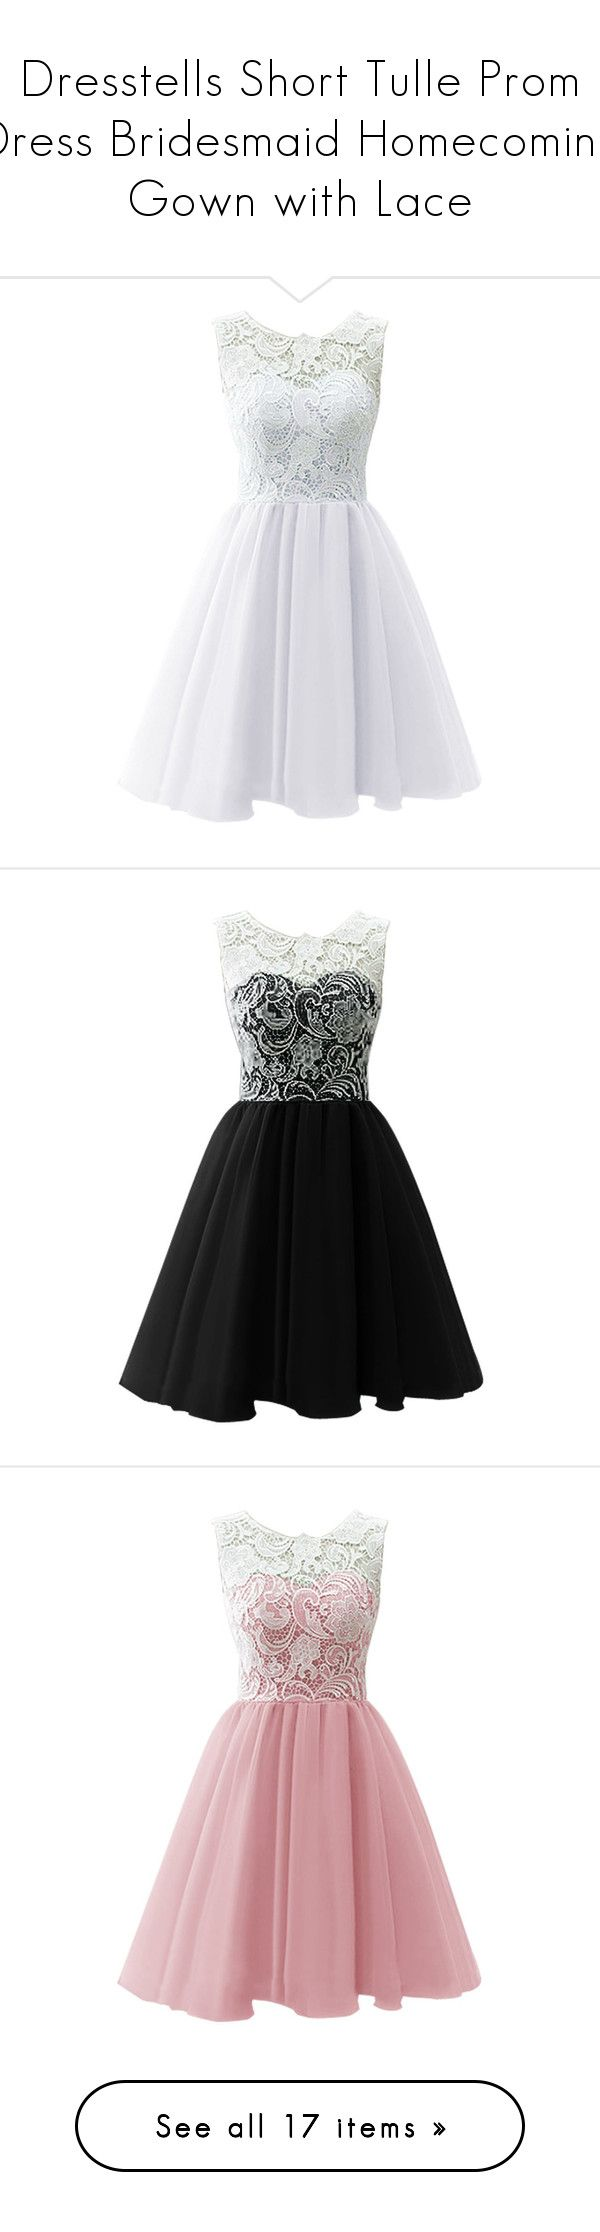 """""""Dresstells Short Tulle Prom Dress Bridesmaid Homecoming Gown with Lace"""" by qwertyuiop-sparta ❤ liked on Polyvore featuring dresses, vestidos, short dresses, prom, bridesmaid dresses, mini prom dresses, short mini dress, short homecoming dresses, short bridesmaid dresses and black"""